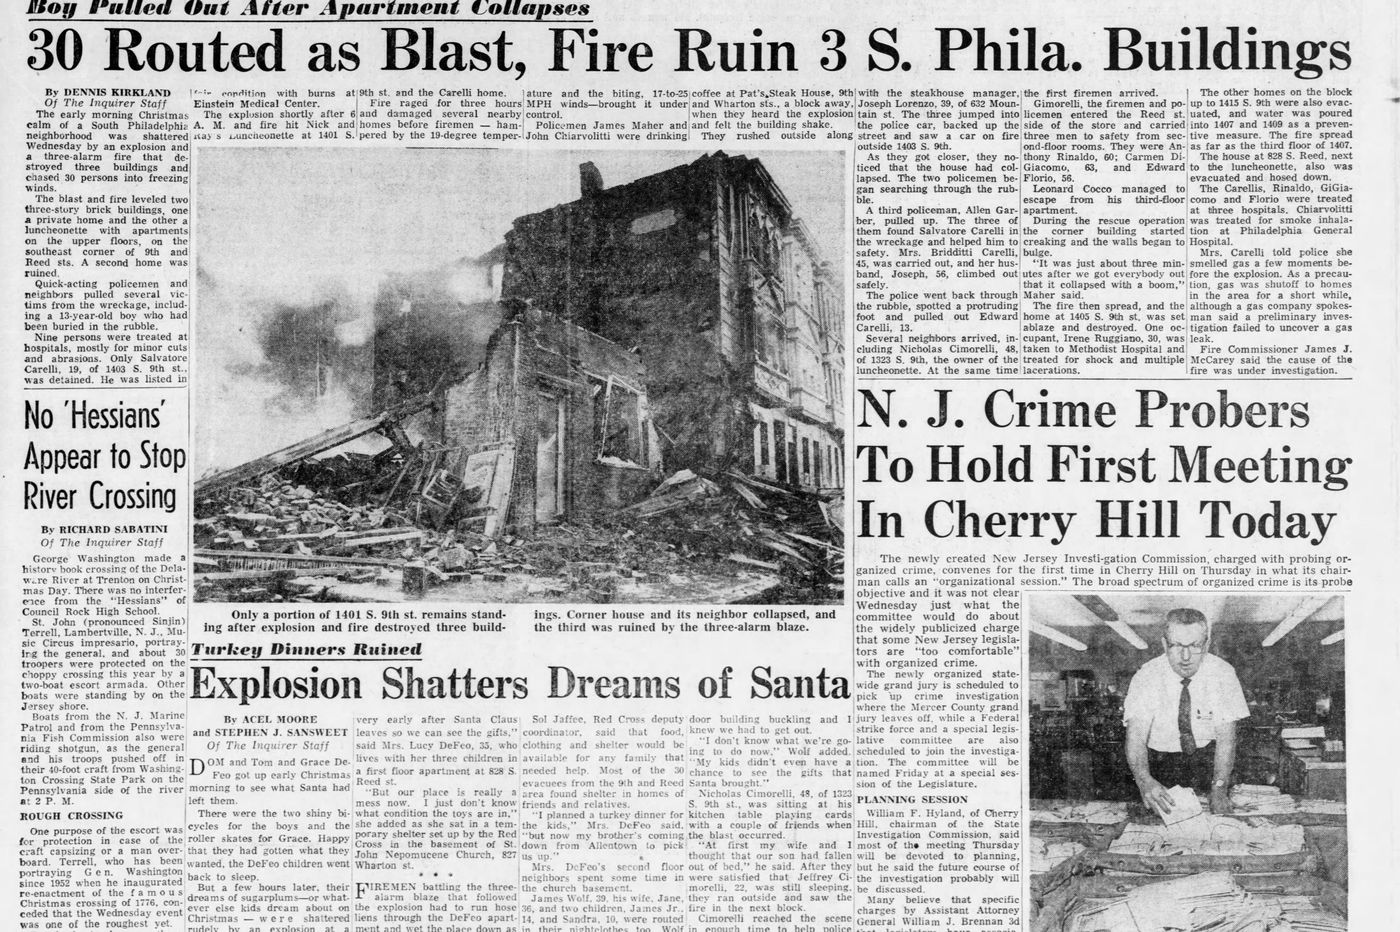 South Philly explosion scene eerily similar to one that happened a block away, 51 years ago